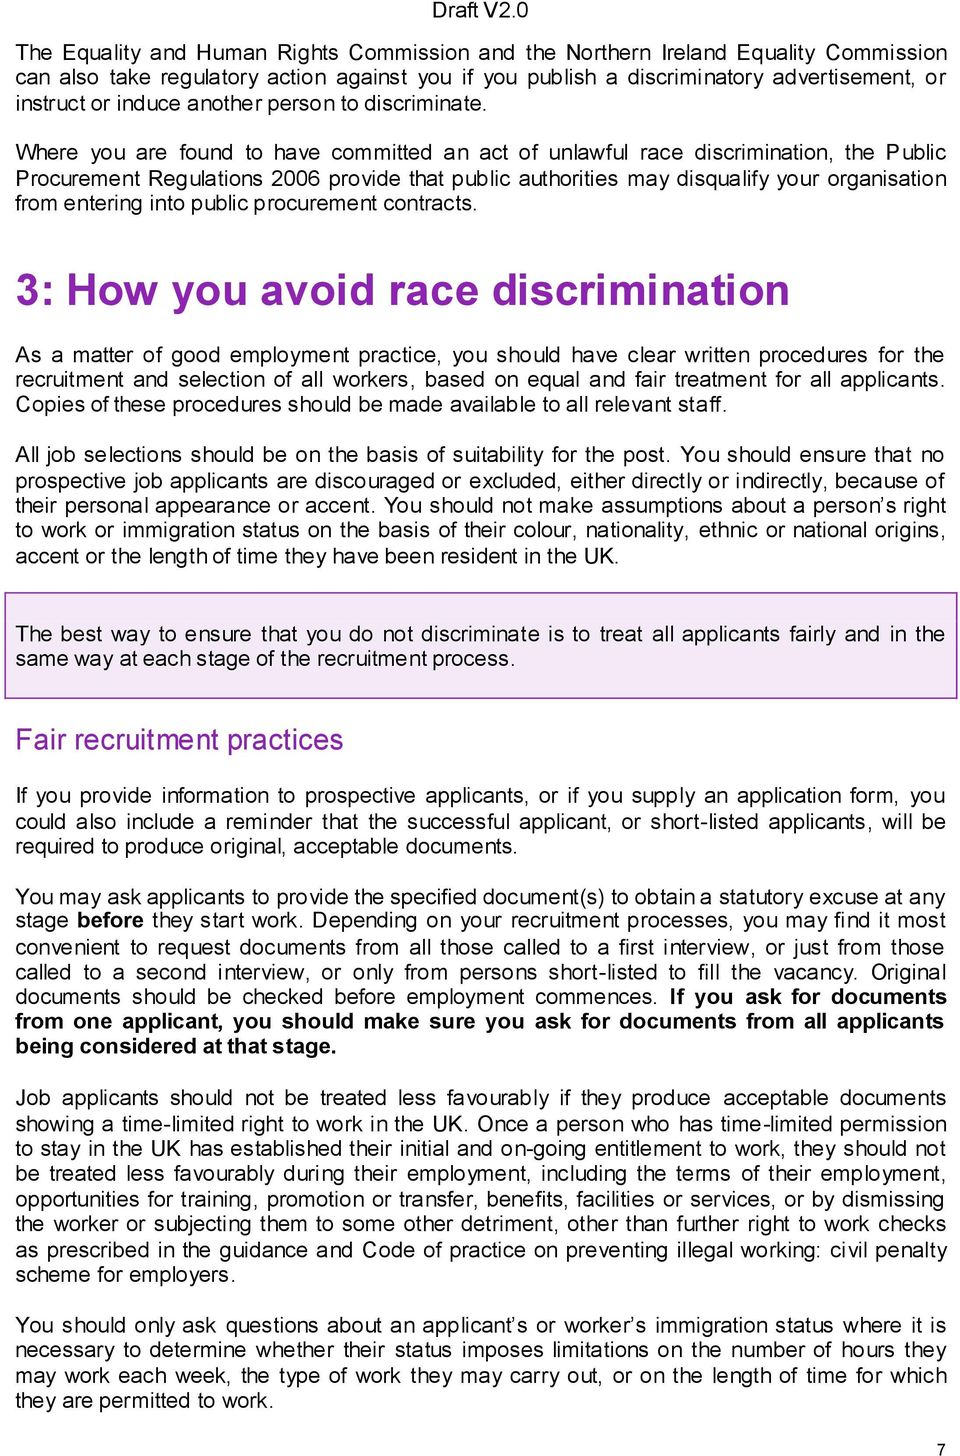 Where you are found to have committed an act of unlawful race discrimination, the Public Procurement Regulations 2006 provide that public authorities may disqualify your organisation from entering